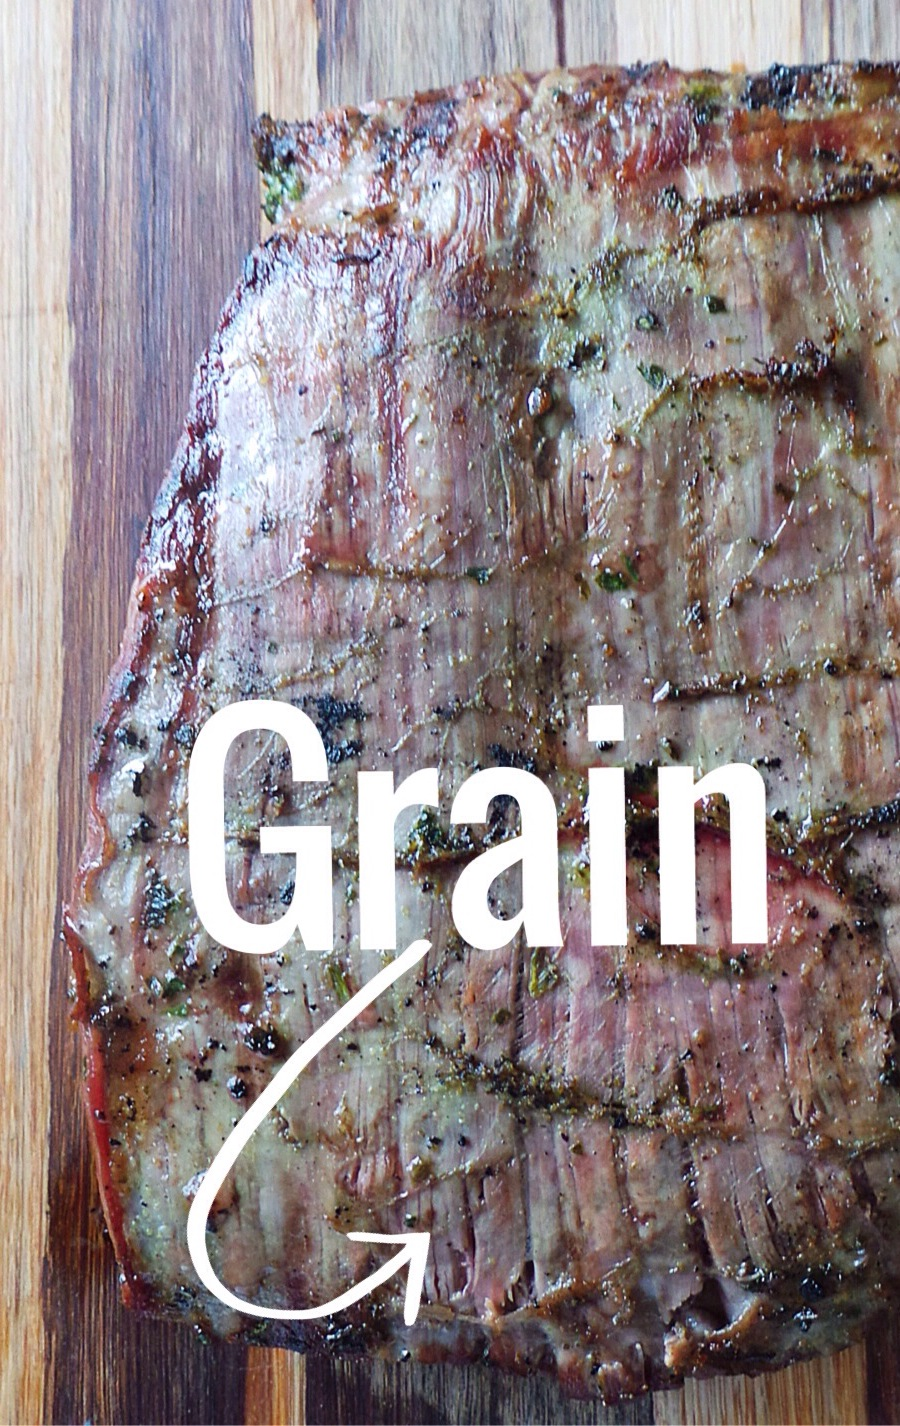 Always cut AGAINST the grain, it'll cut through the chewy fibers and you're meat will be nice and tender!